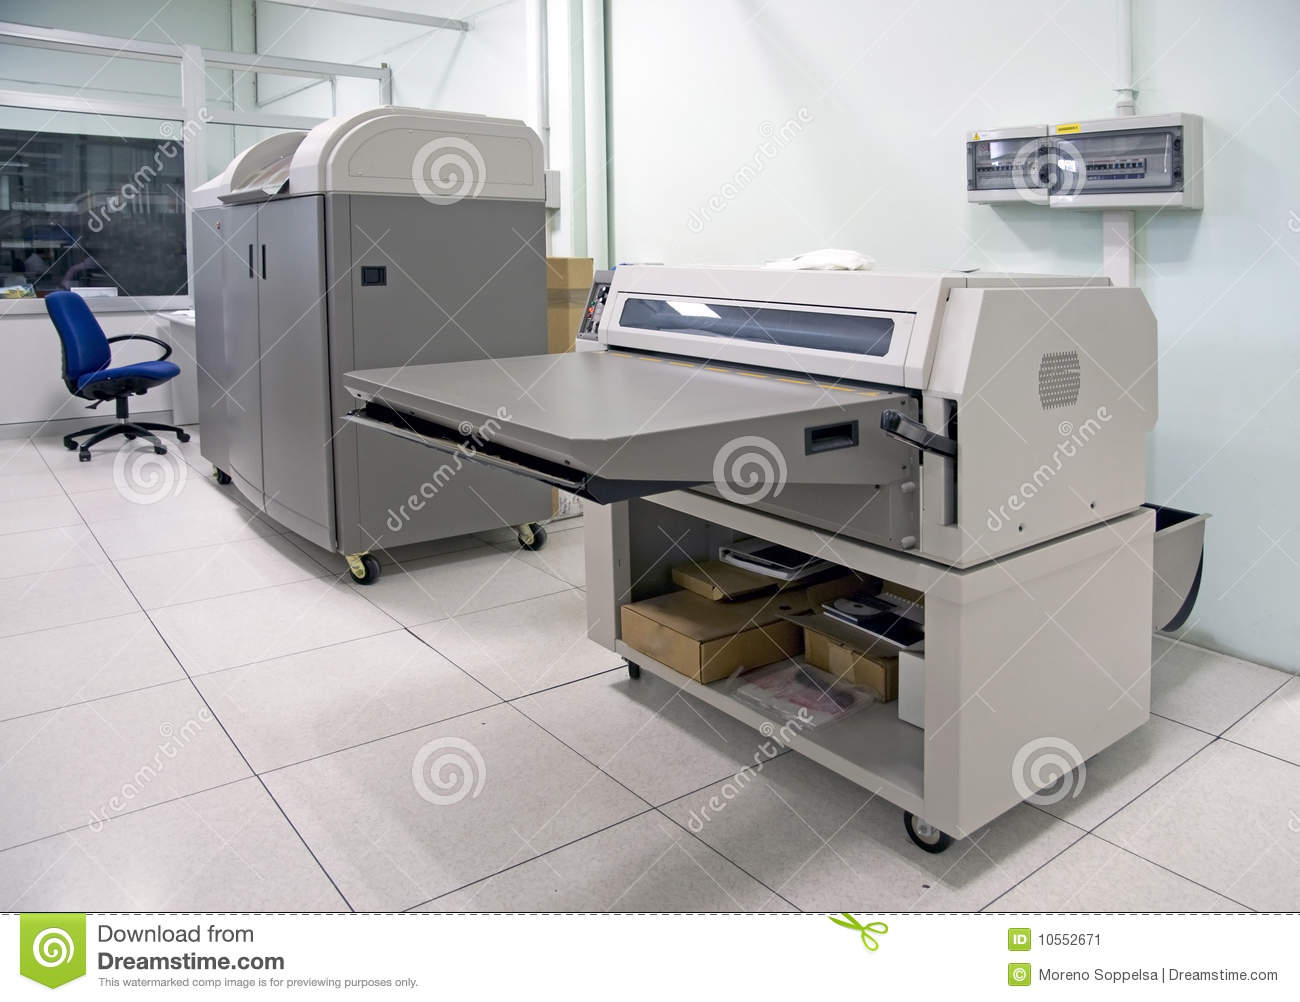 Computer To Plate (CTP) - Printing Process Stock Image